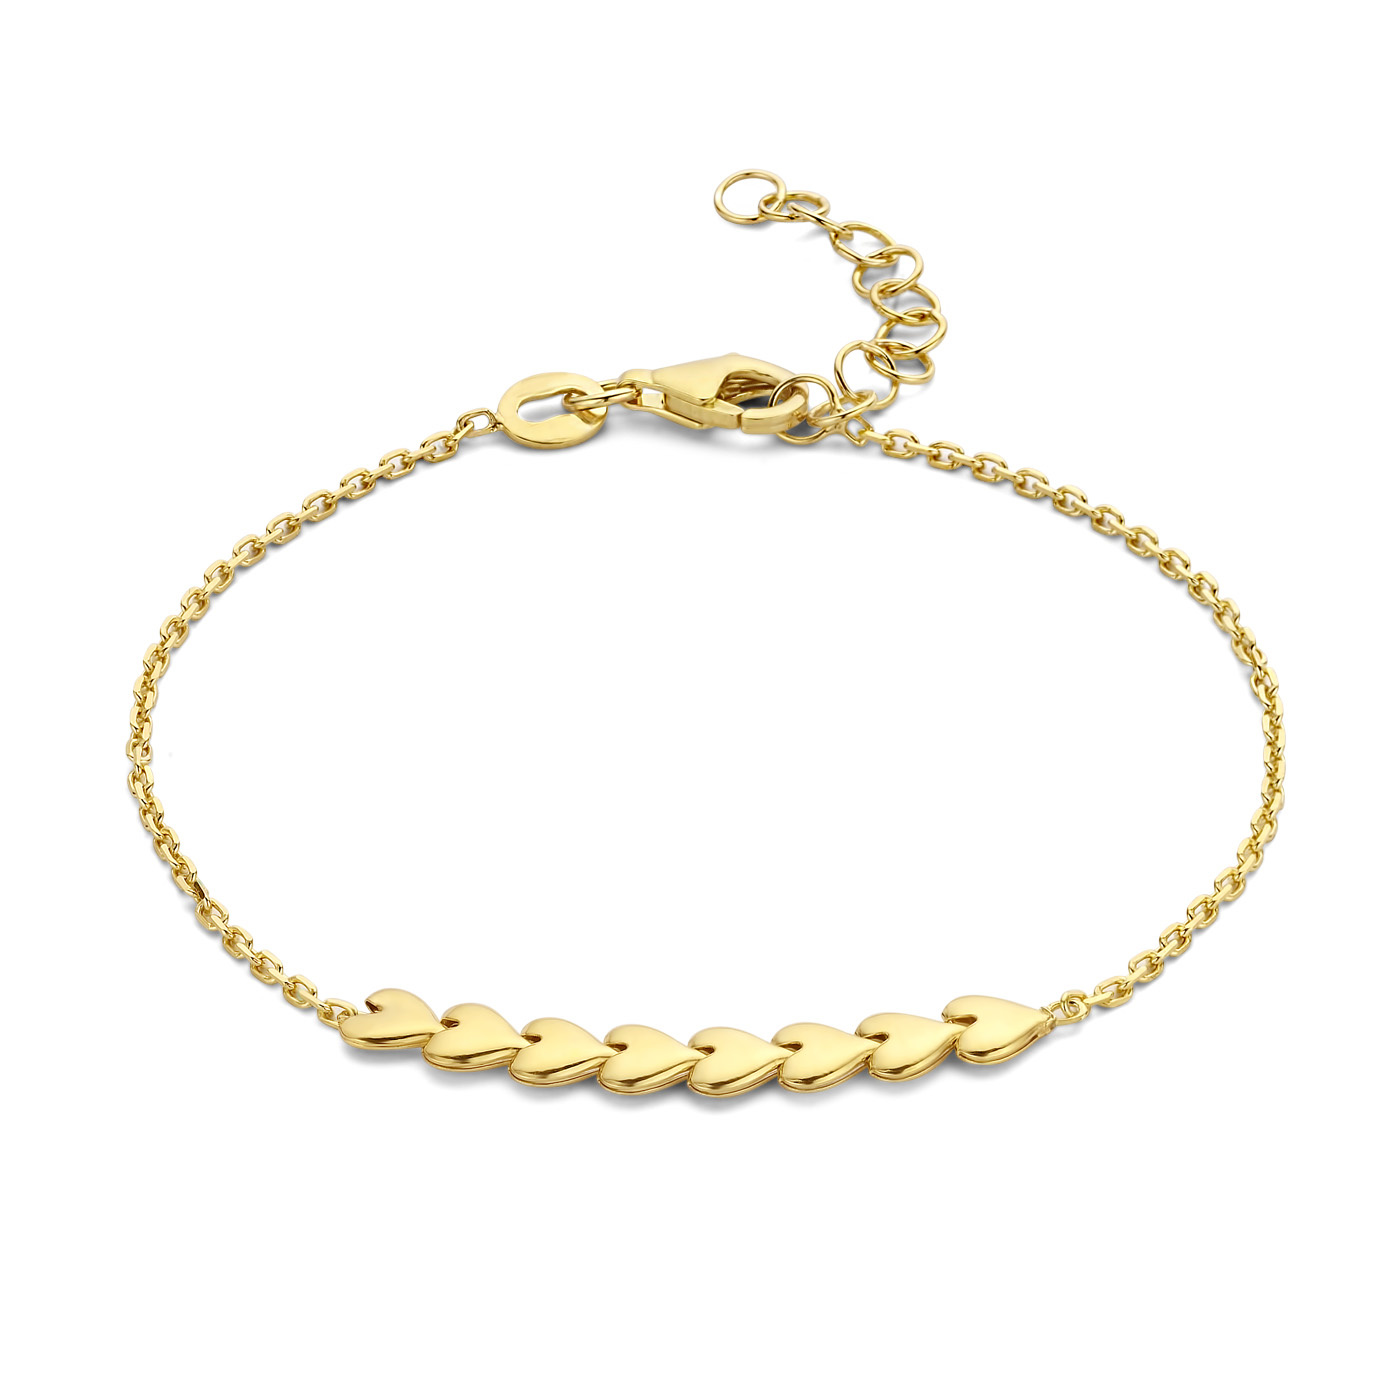 May Sparkle Happiness Sunny 925 sterling silver gold colored bracelet